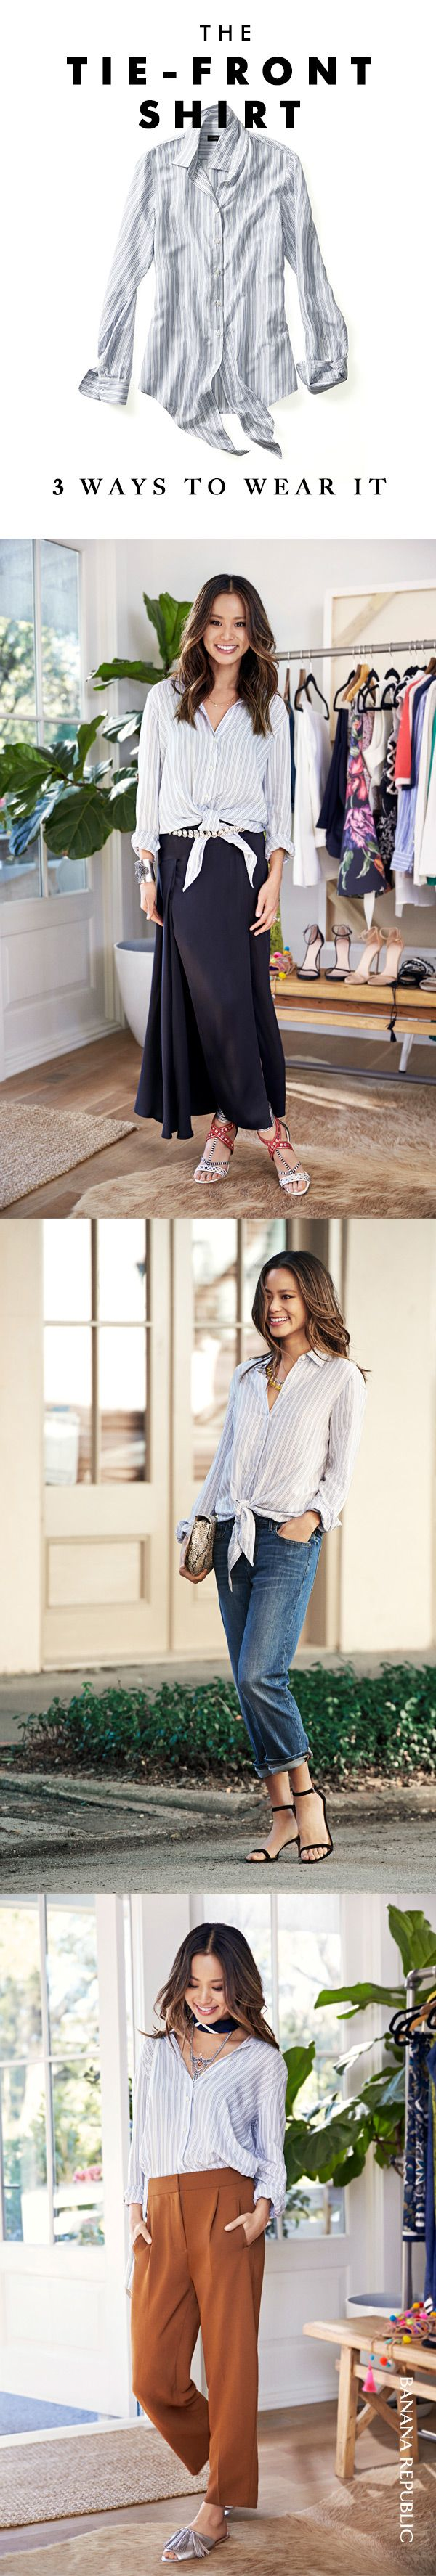 Style icon Jamie Chung picked her summer Closet VIPs: very important pieces that can be worn in so many ways. Try this trendy tie-front striped top with a neutral trouser and add a sandal. Or wear it with a beautiful maxi skirt and add an interesting belt.